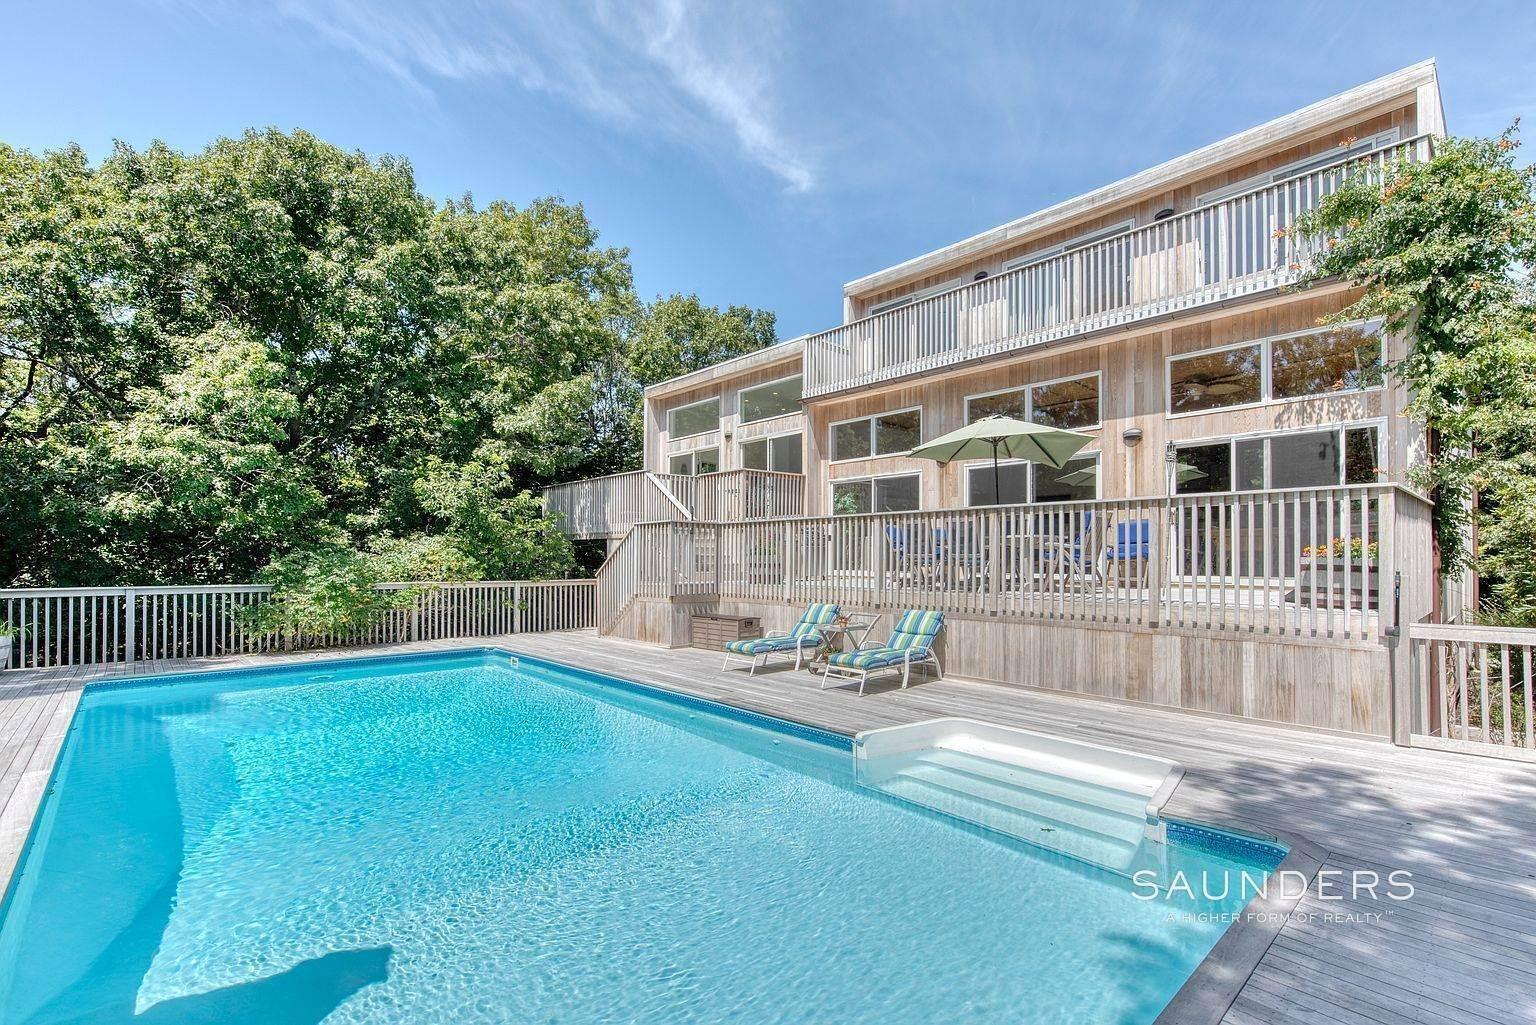 Single Family Homes for Sale at Amagansett Hideaway - New To The Market 35 Devonshire Lane, Amagansett, East Hampton Town, NY 11930